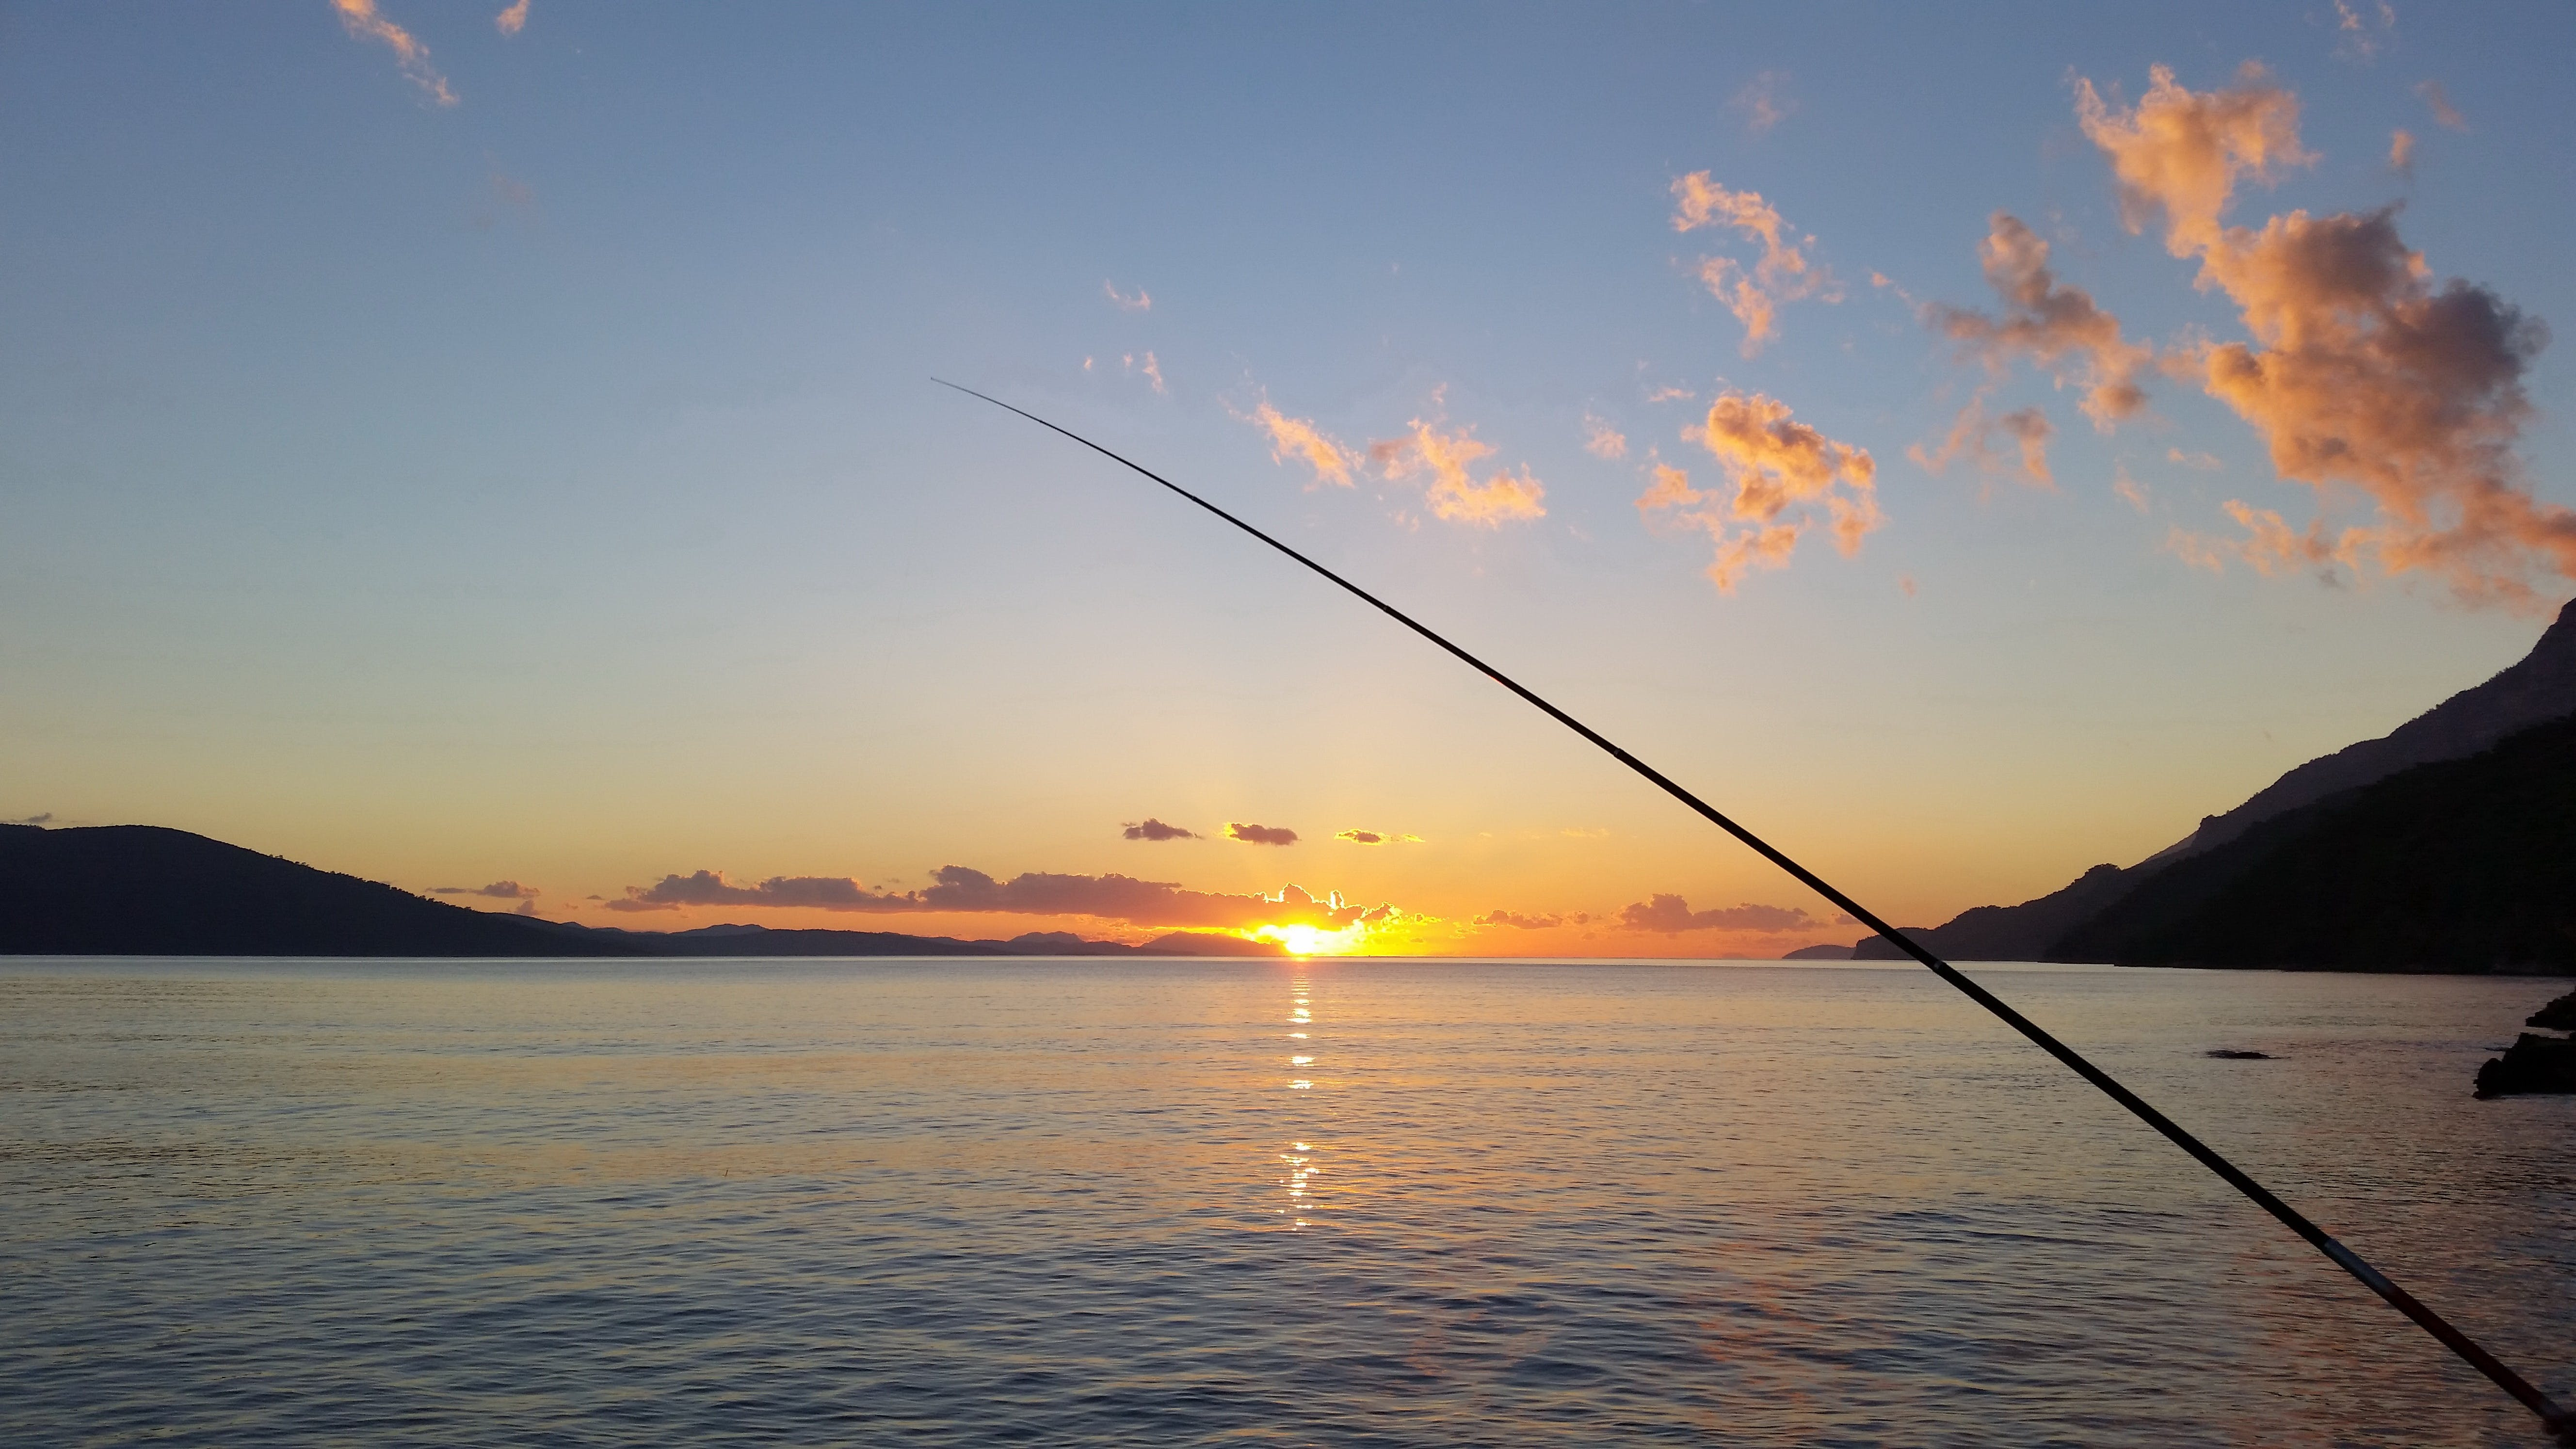 Fishing Rod Near Body of Water during Sunset